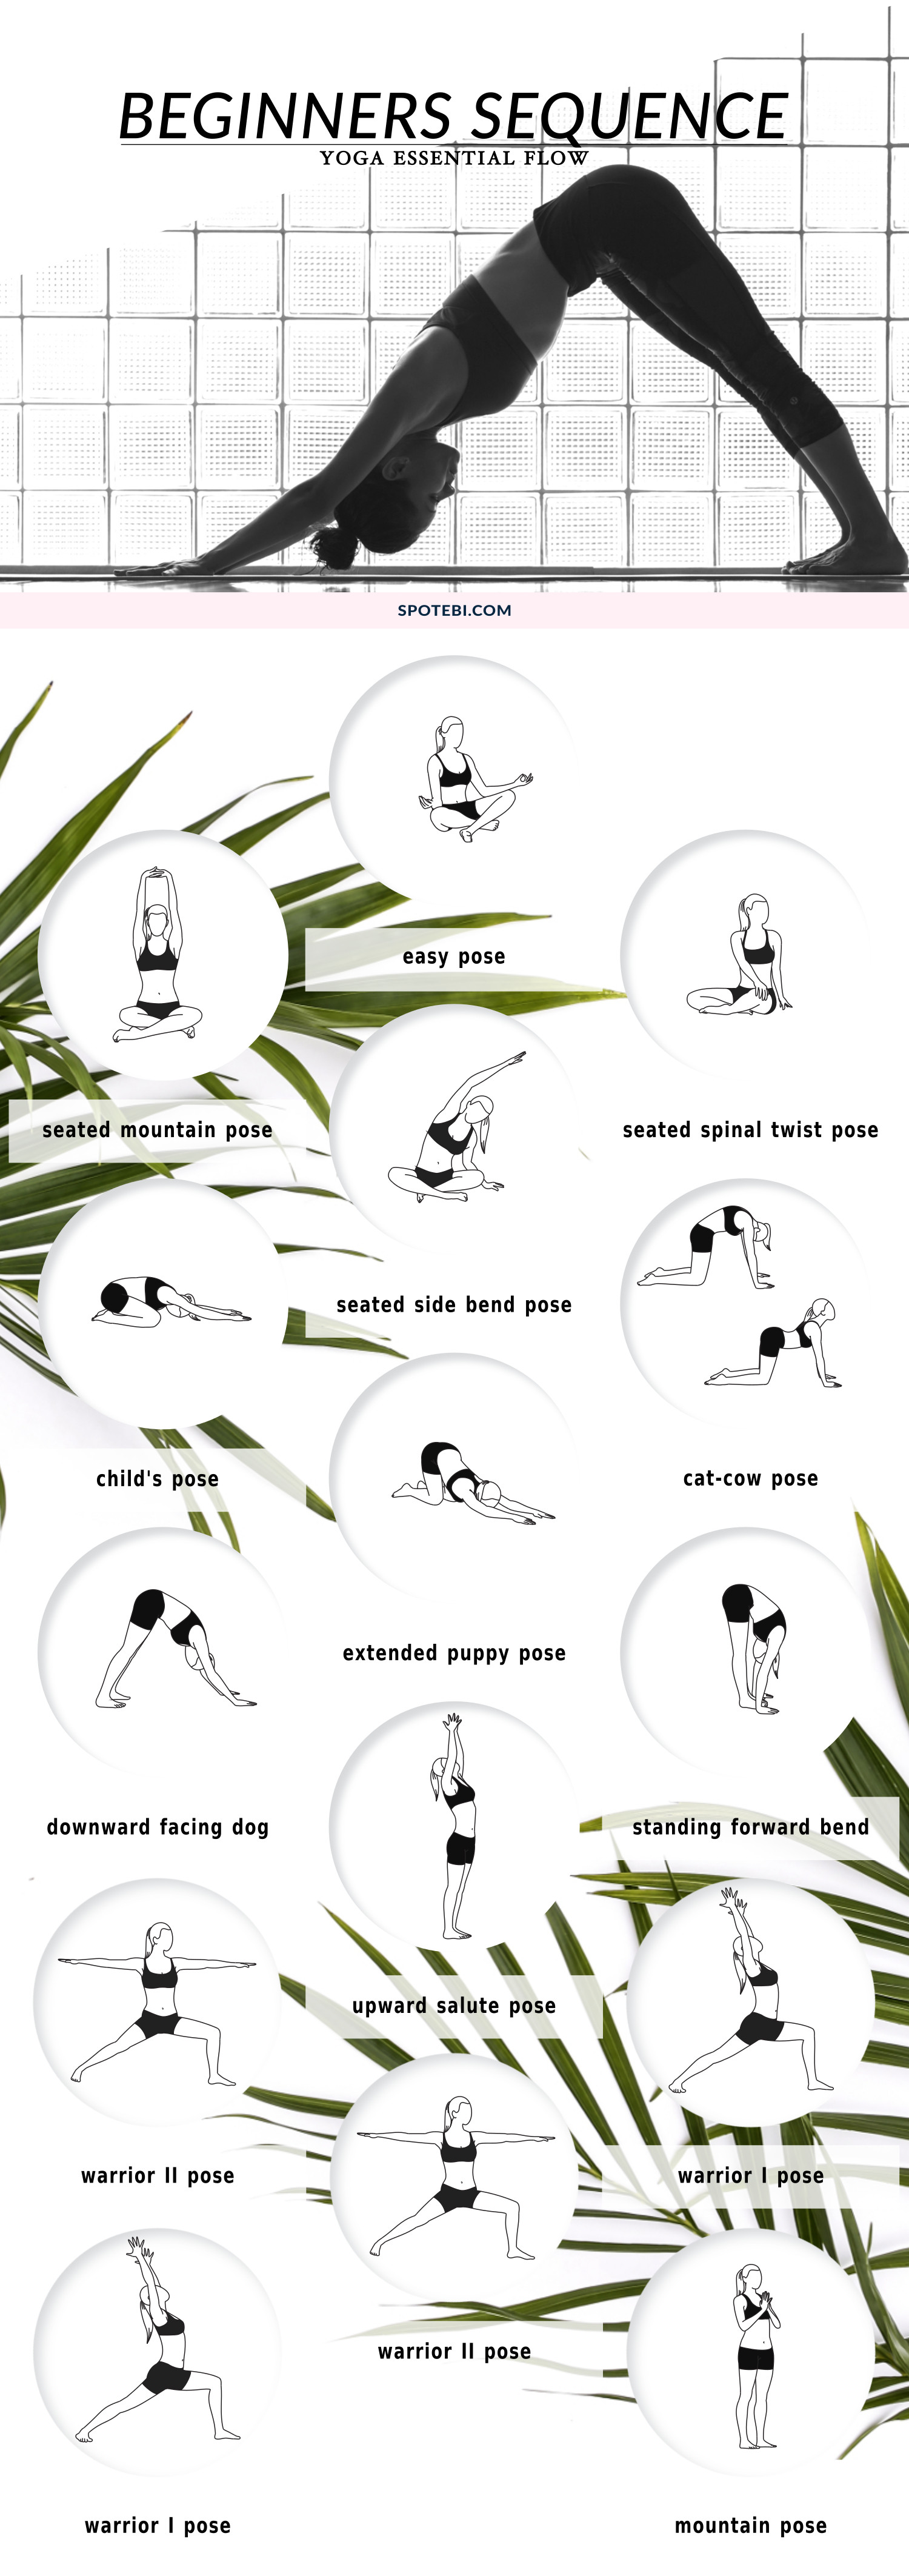 Are you new to yoga? This beginners yoga sequence is perfect if you're looking to achieve more flexibility and get in touch with your spiritual side. Stretch your body, practice mindfulness and let go of emotional baggage. https://www.spotebi.com/yoga-sequences/10-minute-beginners-yoga/